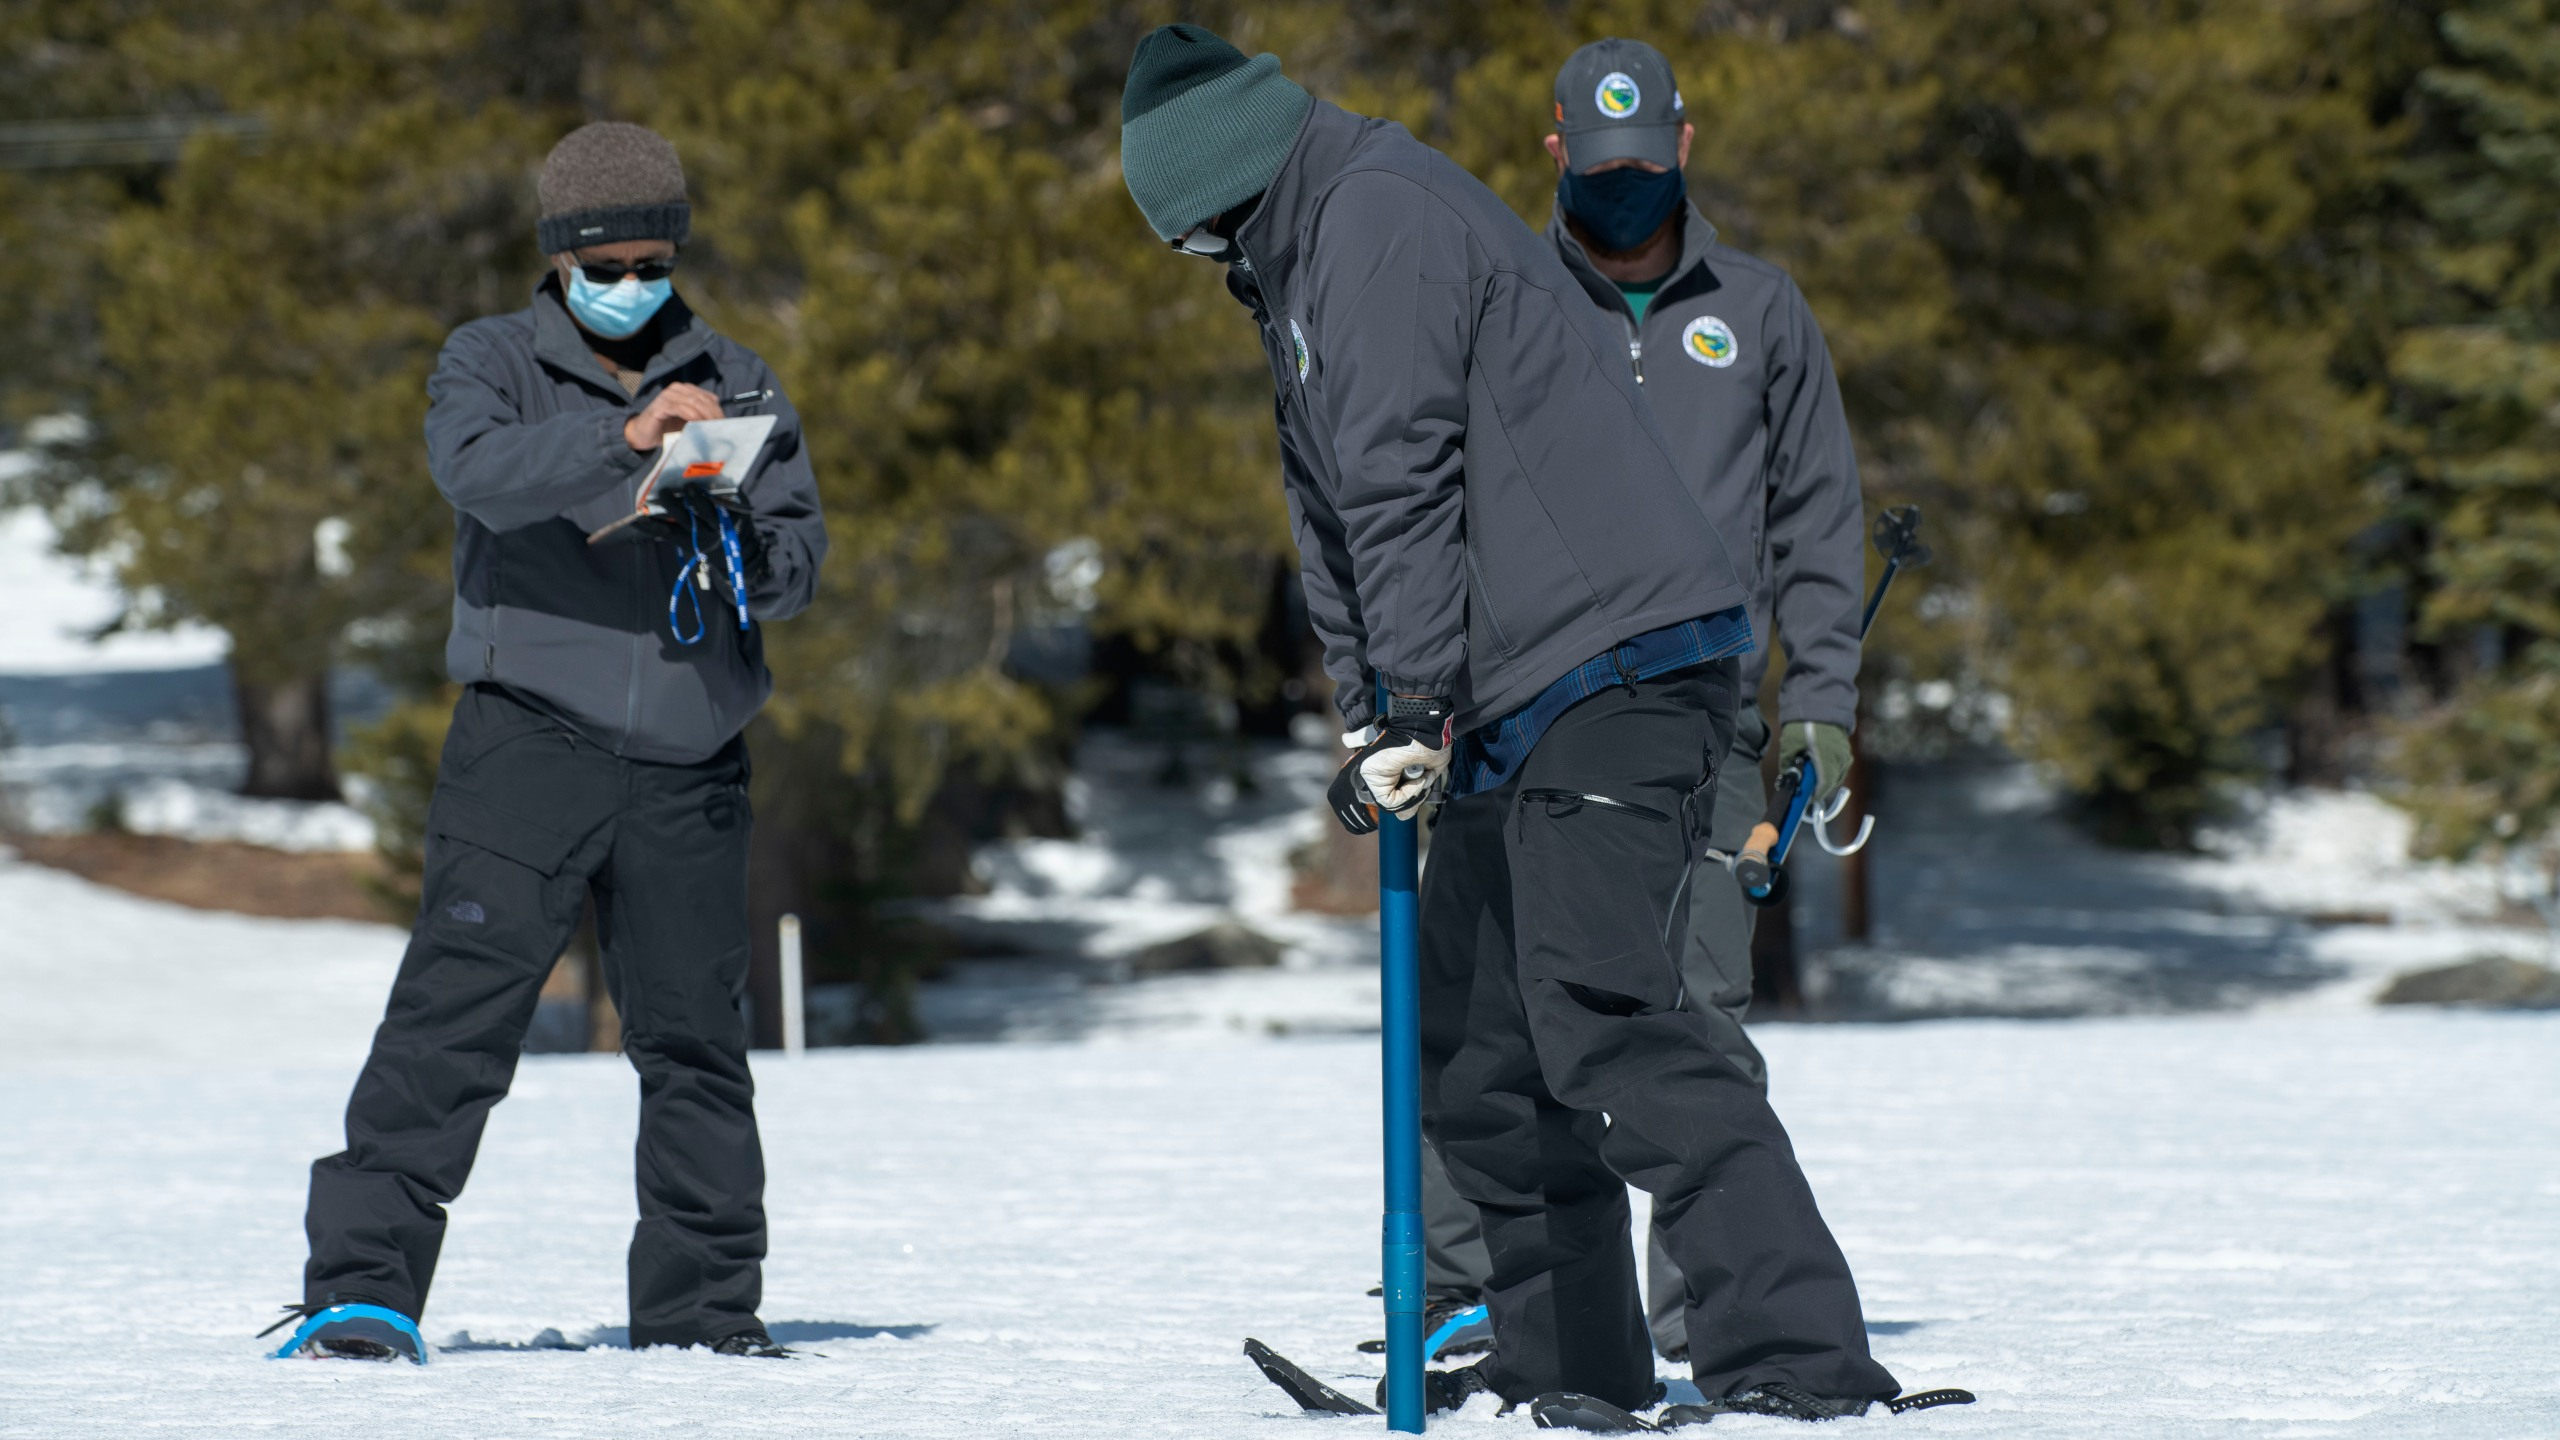 Assisted by Ramesh Gautam, left, and Anthony Burdock, right, Sean de Guzman, chief of snow surveys for the California Department of Water Resources, checks the depth of the snowpack during the second snow survey of the season at Phillips Station near Echo Summit on March 2, 2021. (Randall Benton / Associated Press)